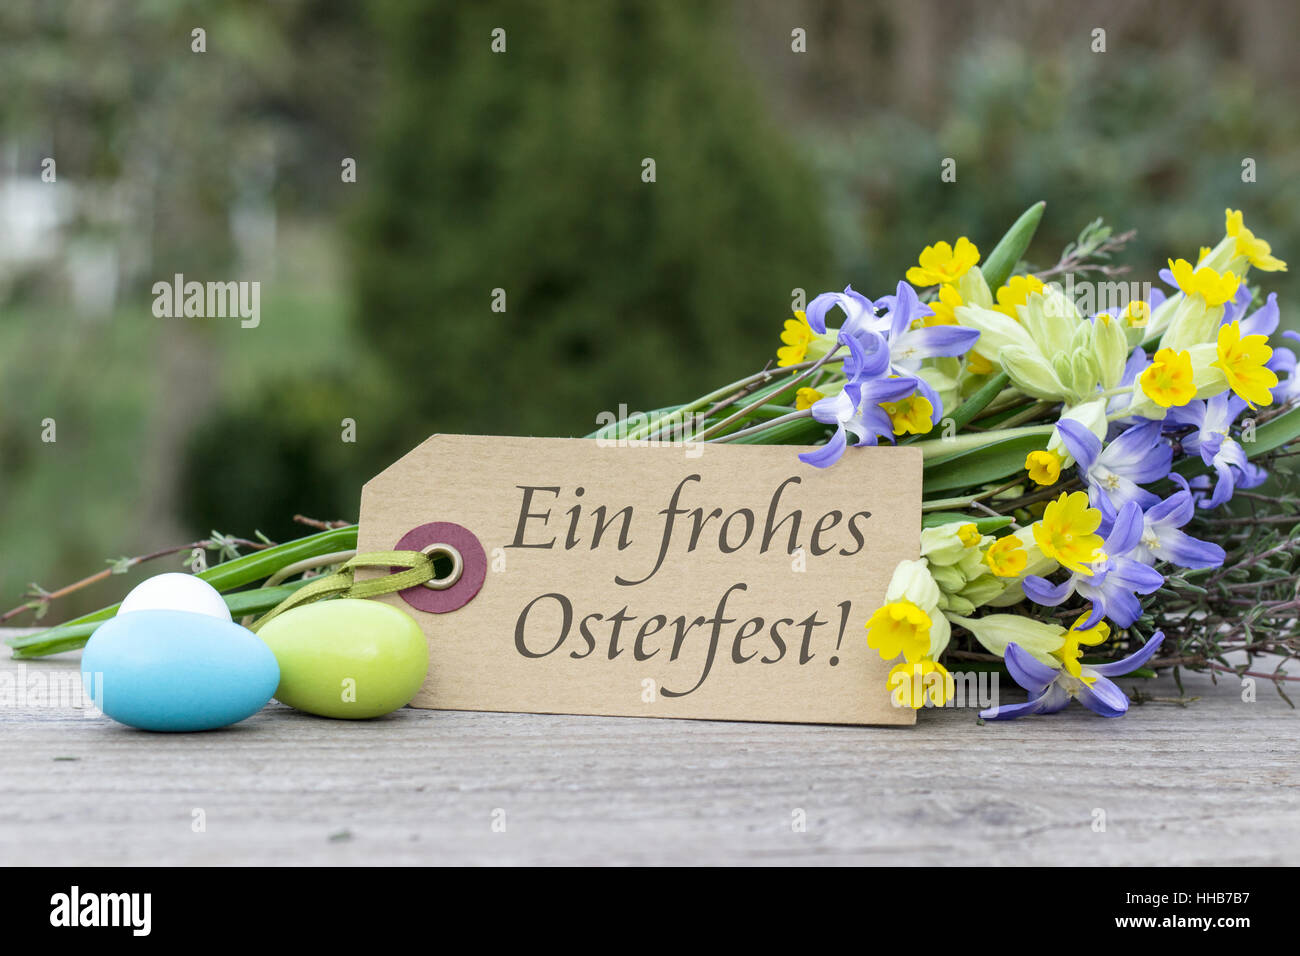 German Language Greeting Card For Easter With The Text Best Regards